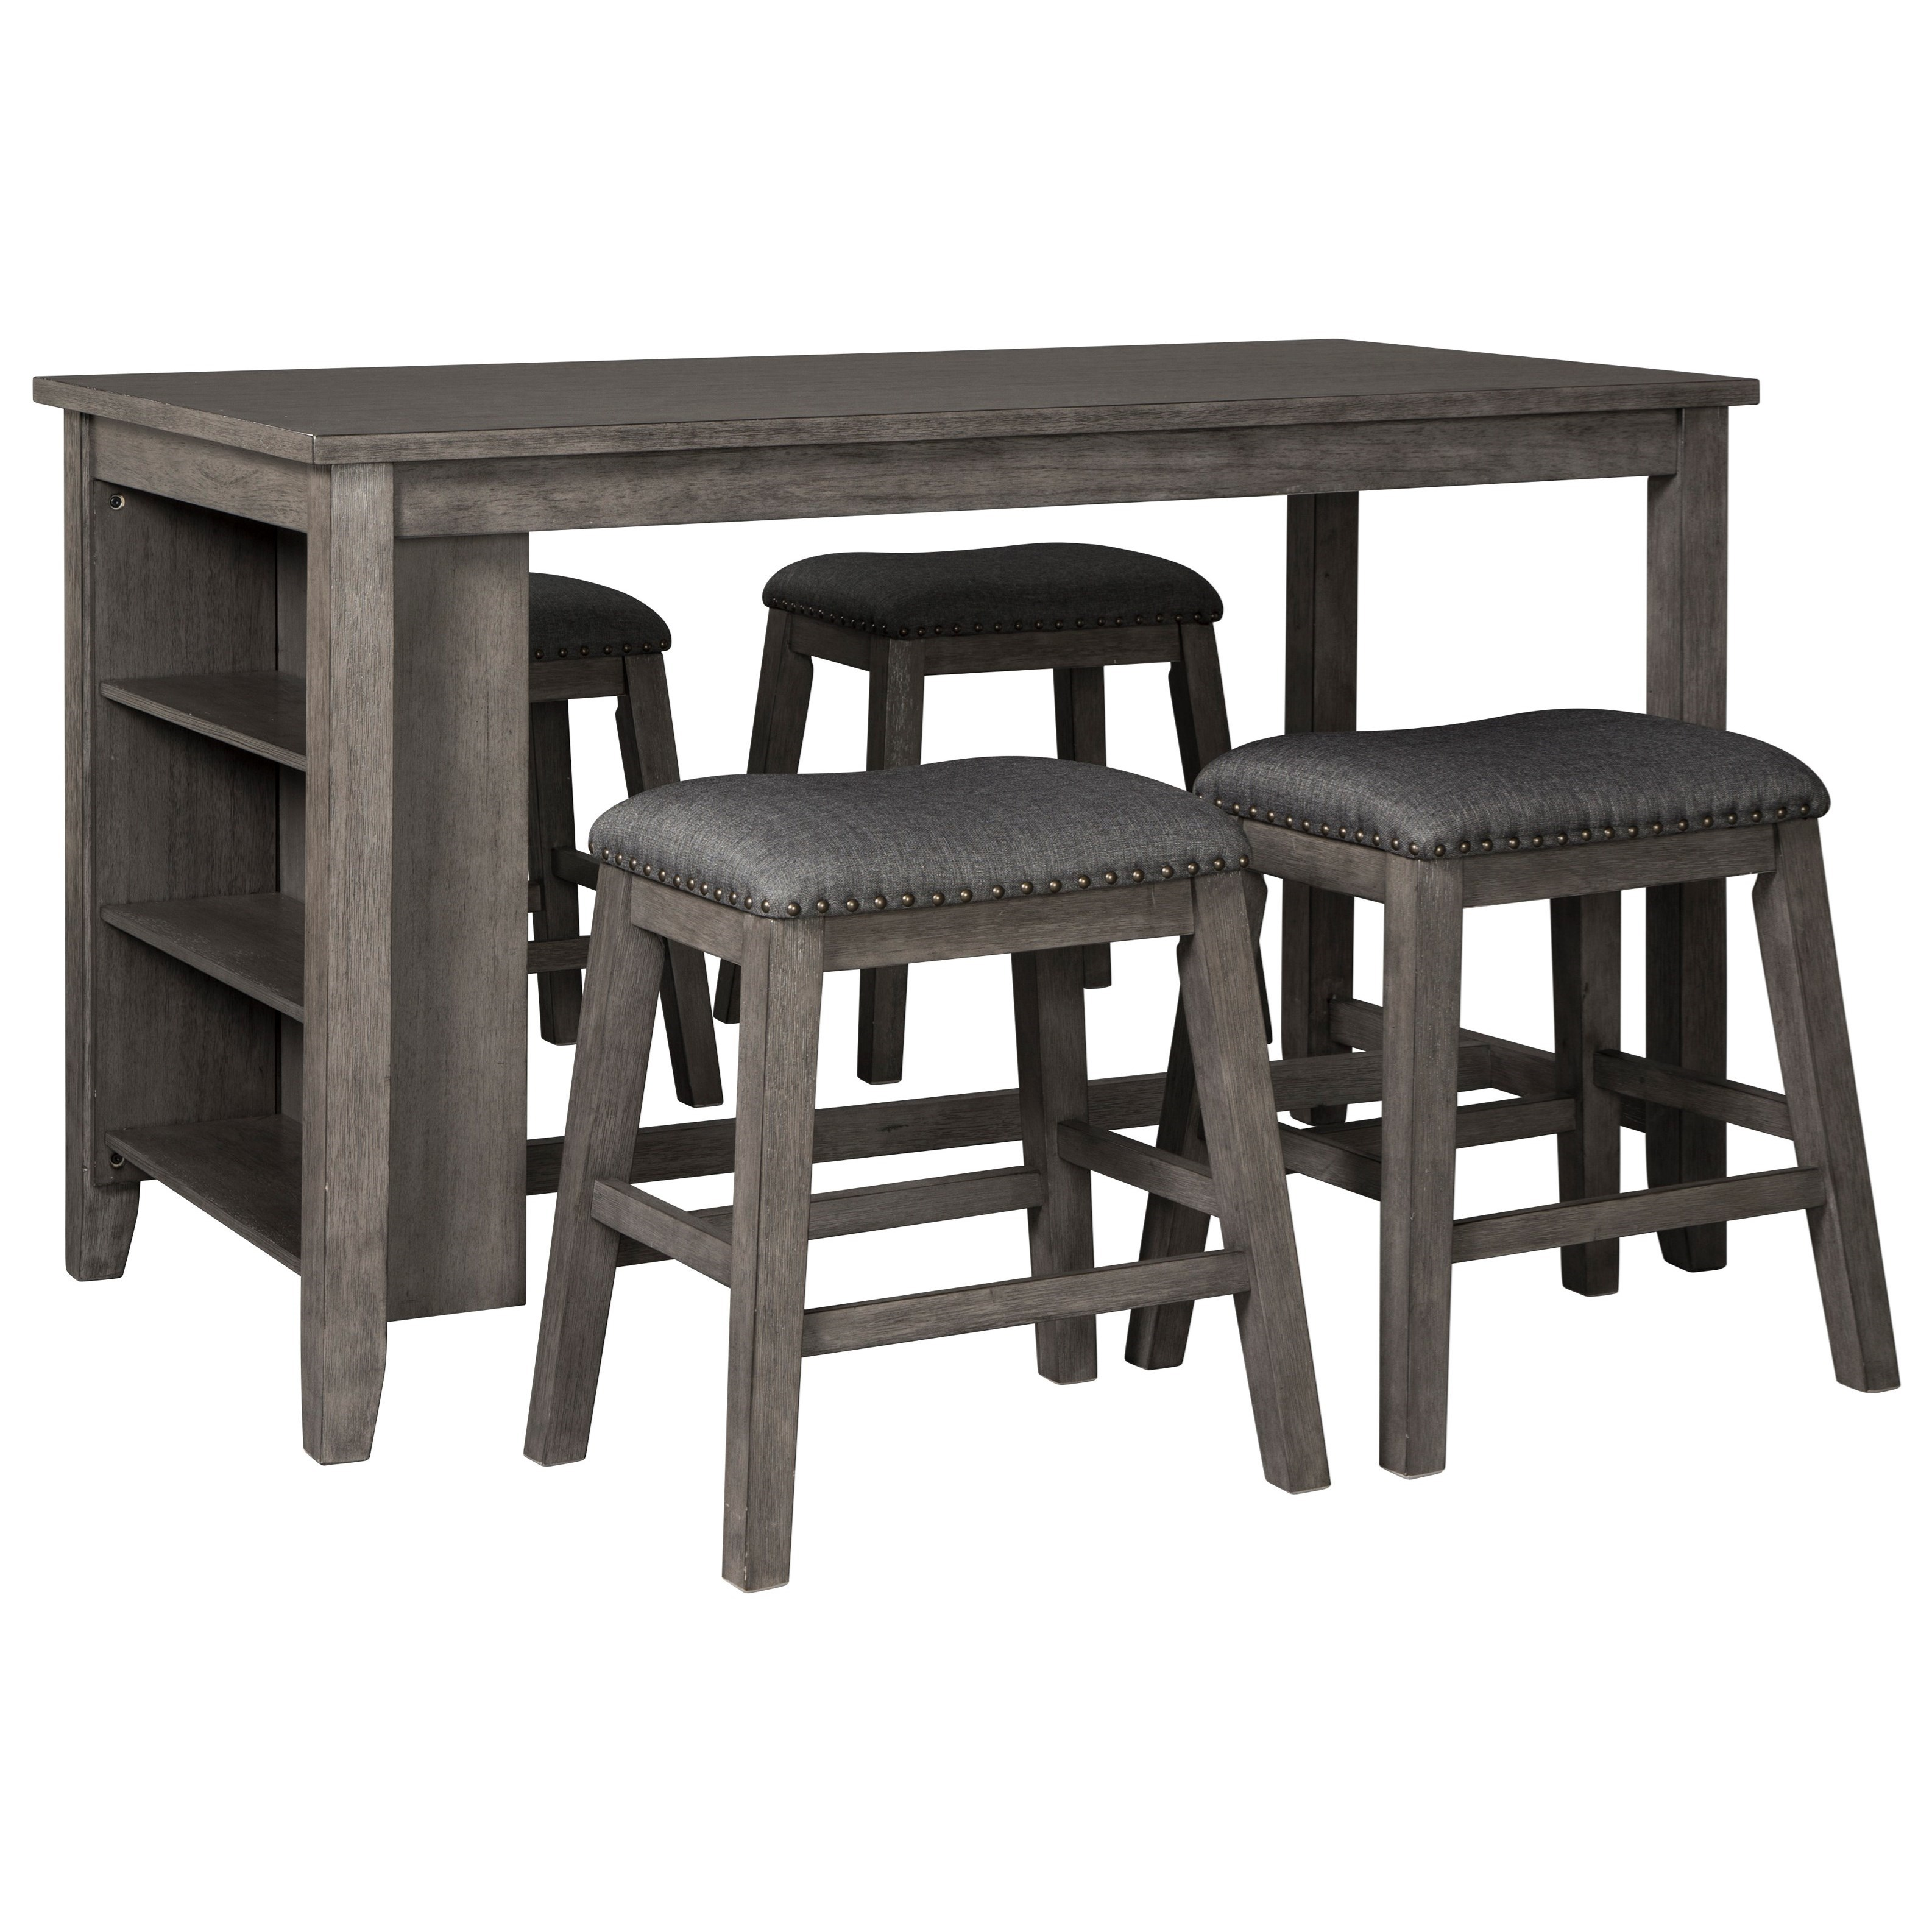 Caitbrook Five Piece Kitchen Island & Chair Set by StyleLine at EFO Furniture Outlet